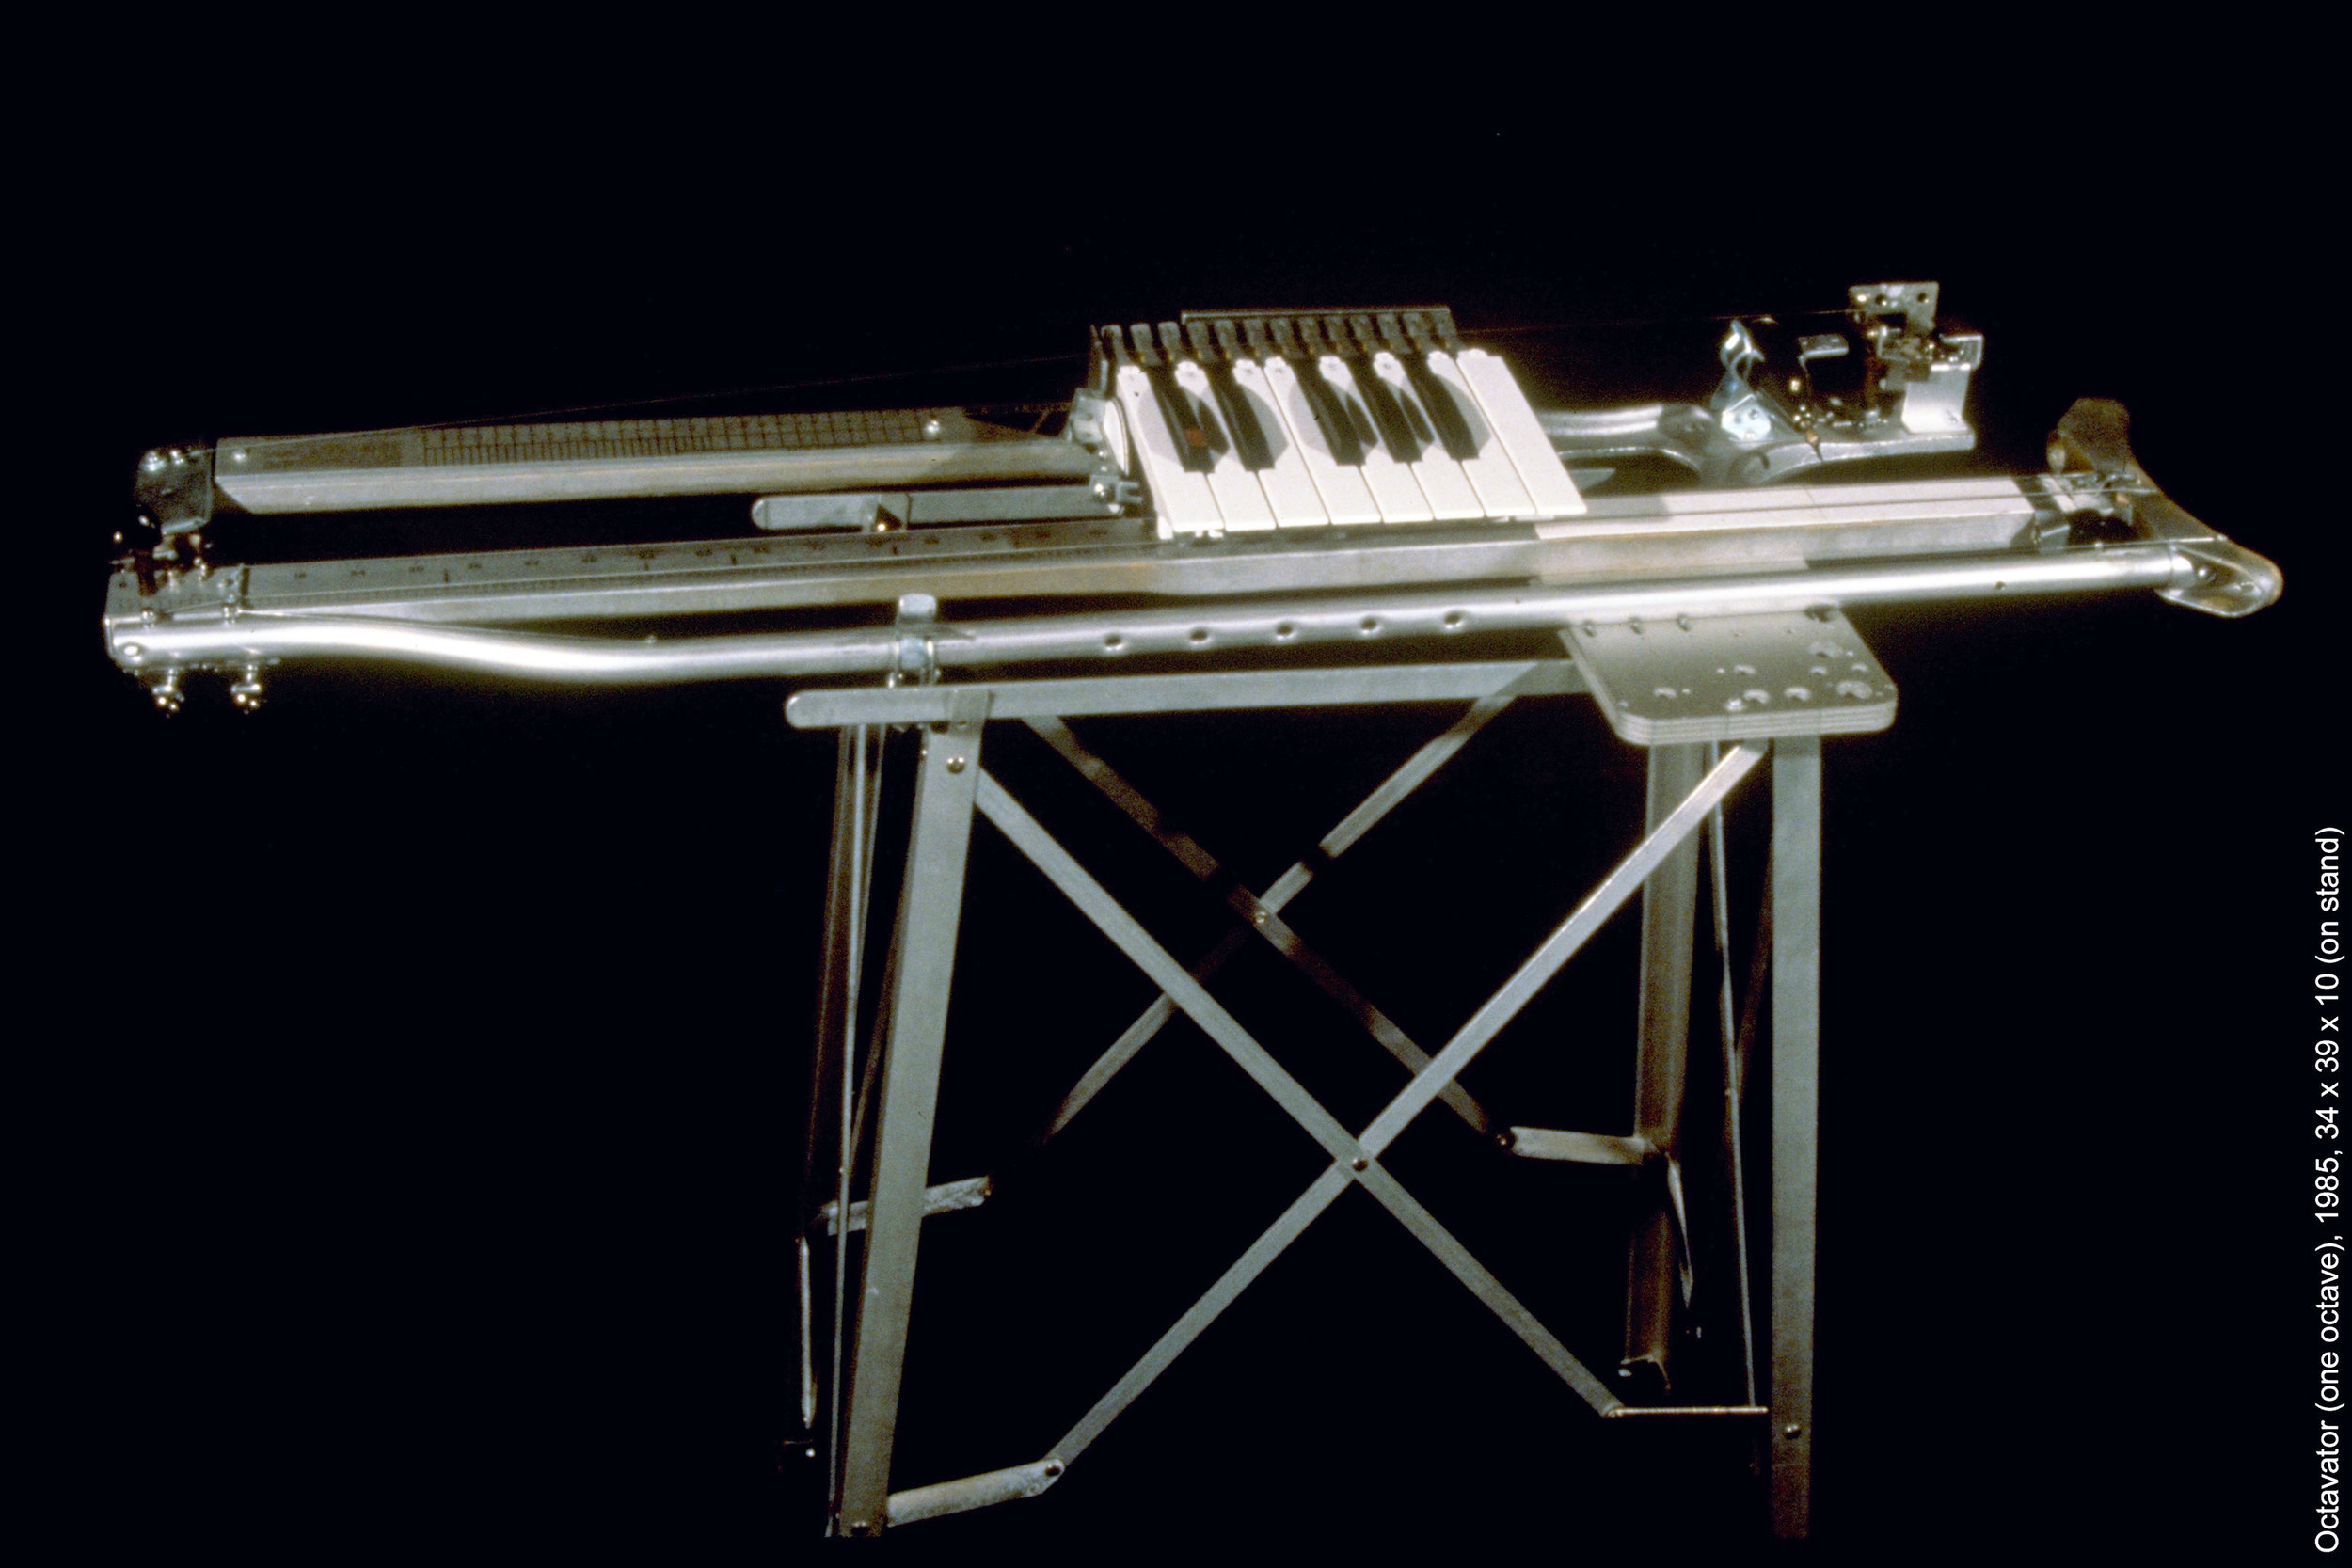 'Octavator'  (one octave), 1985, 34 x 39 x 10 (on stand). The Octavator uses one octave of keys with micro switches connected via telephone wires directly to the lamp inputs of six Carousel slide projectors that are aimed to the same area of the screen. Four keys trigger sequences of four slides that can be played live in any order. A master key advances all four slide projectors for the next group of four animated slides. The body of the Octavator is made from an aluminum crutch, a pneumatic door-closing mechanism, a shoe-size guide, ruler, and miscellaneous hardware in addition to the keyboard, It has four strings, two of which are fretted by the keyboard and/or plucking and bowing and is amplified with contact mics.'